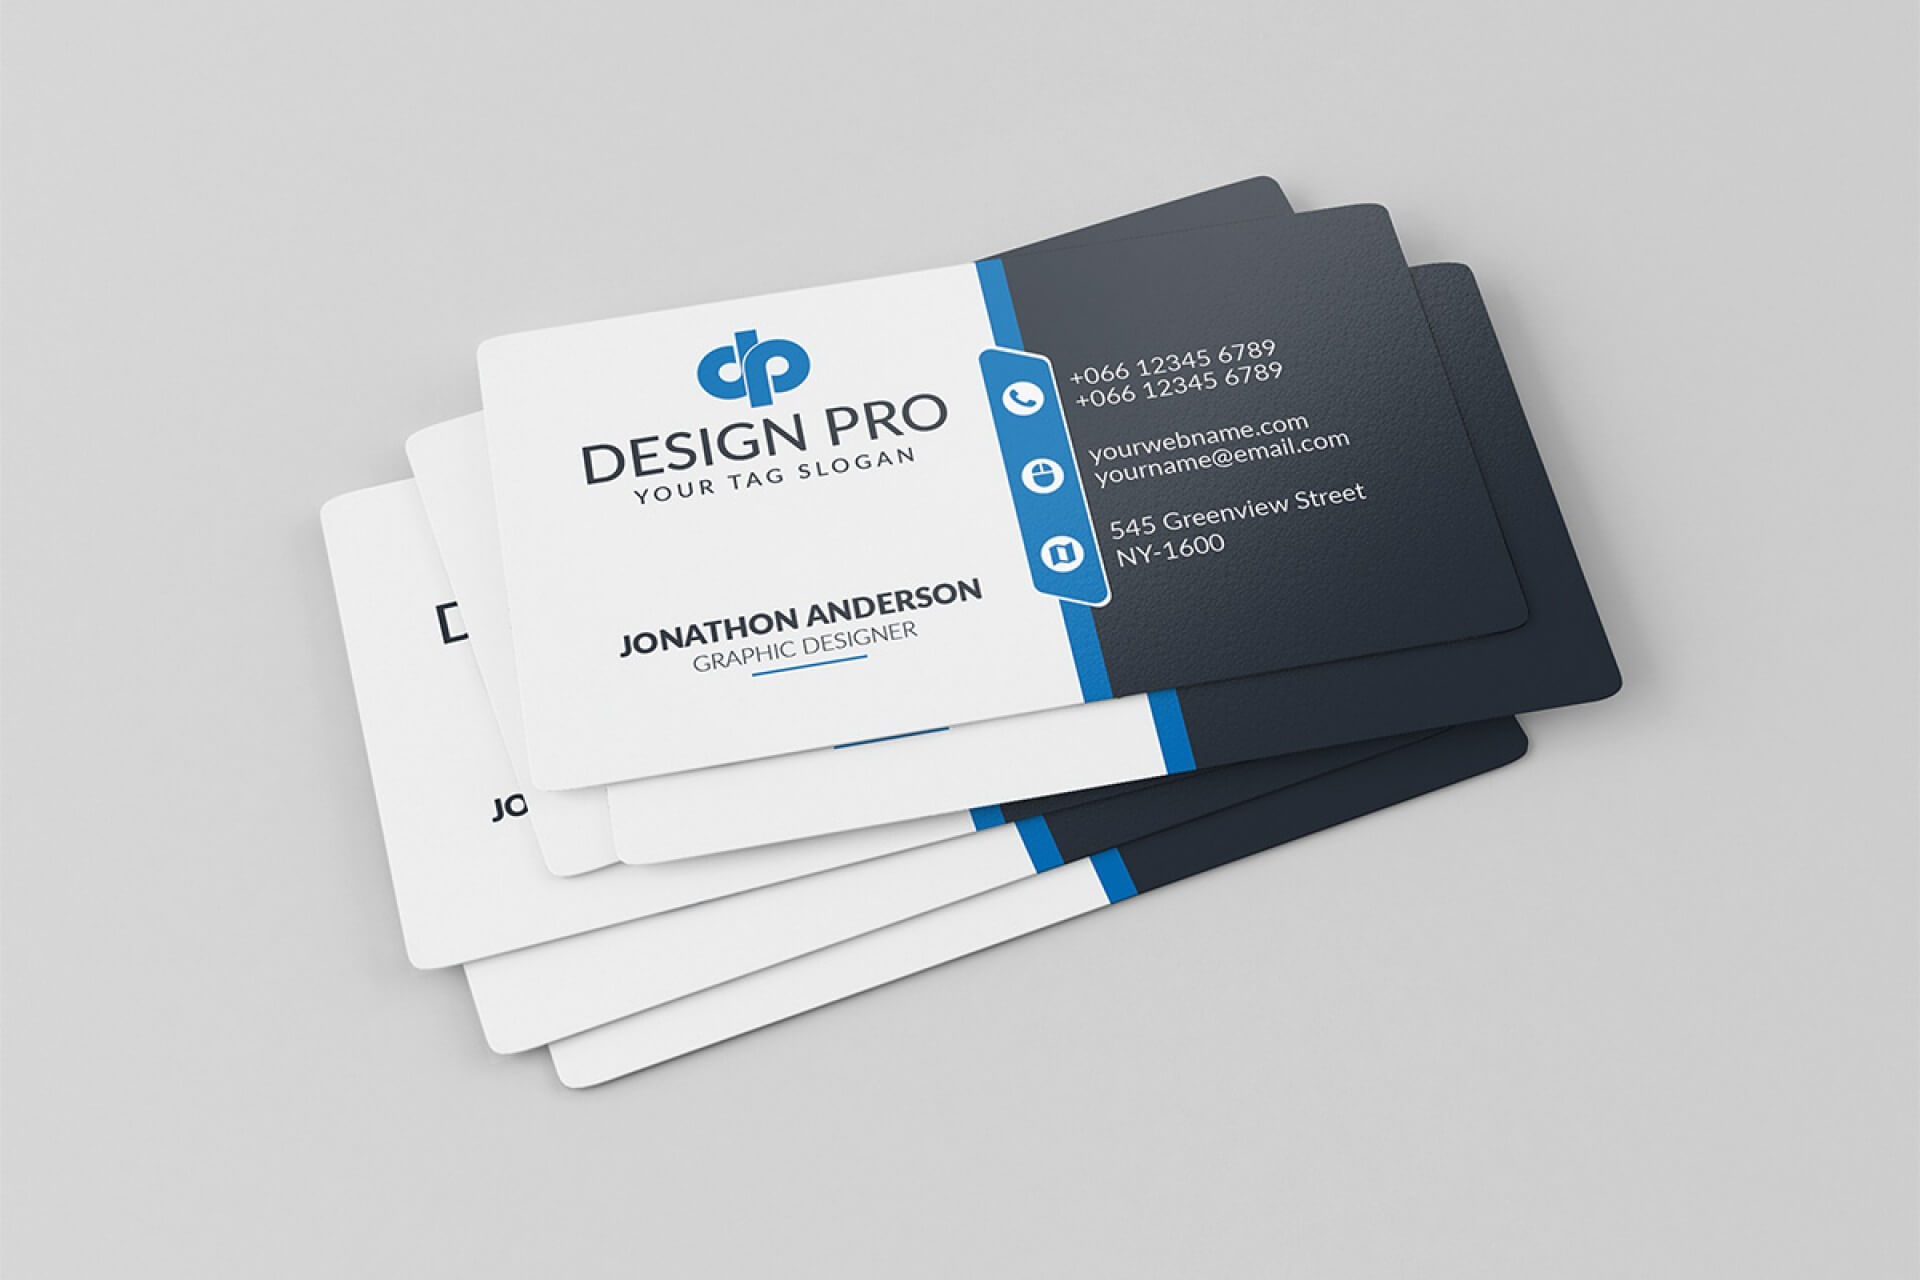 018 Template Ideas Blank Business Card Download Top Psd Throughout Blank Business Card Template Download